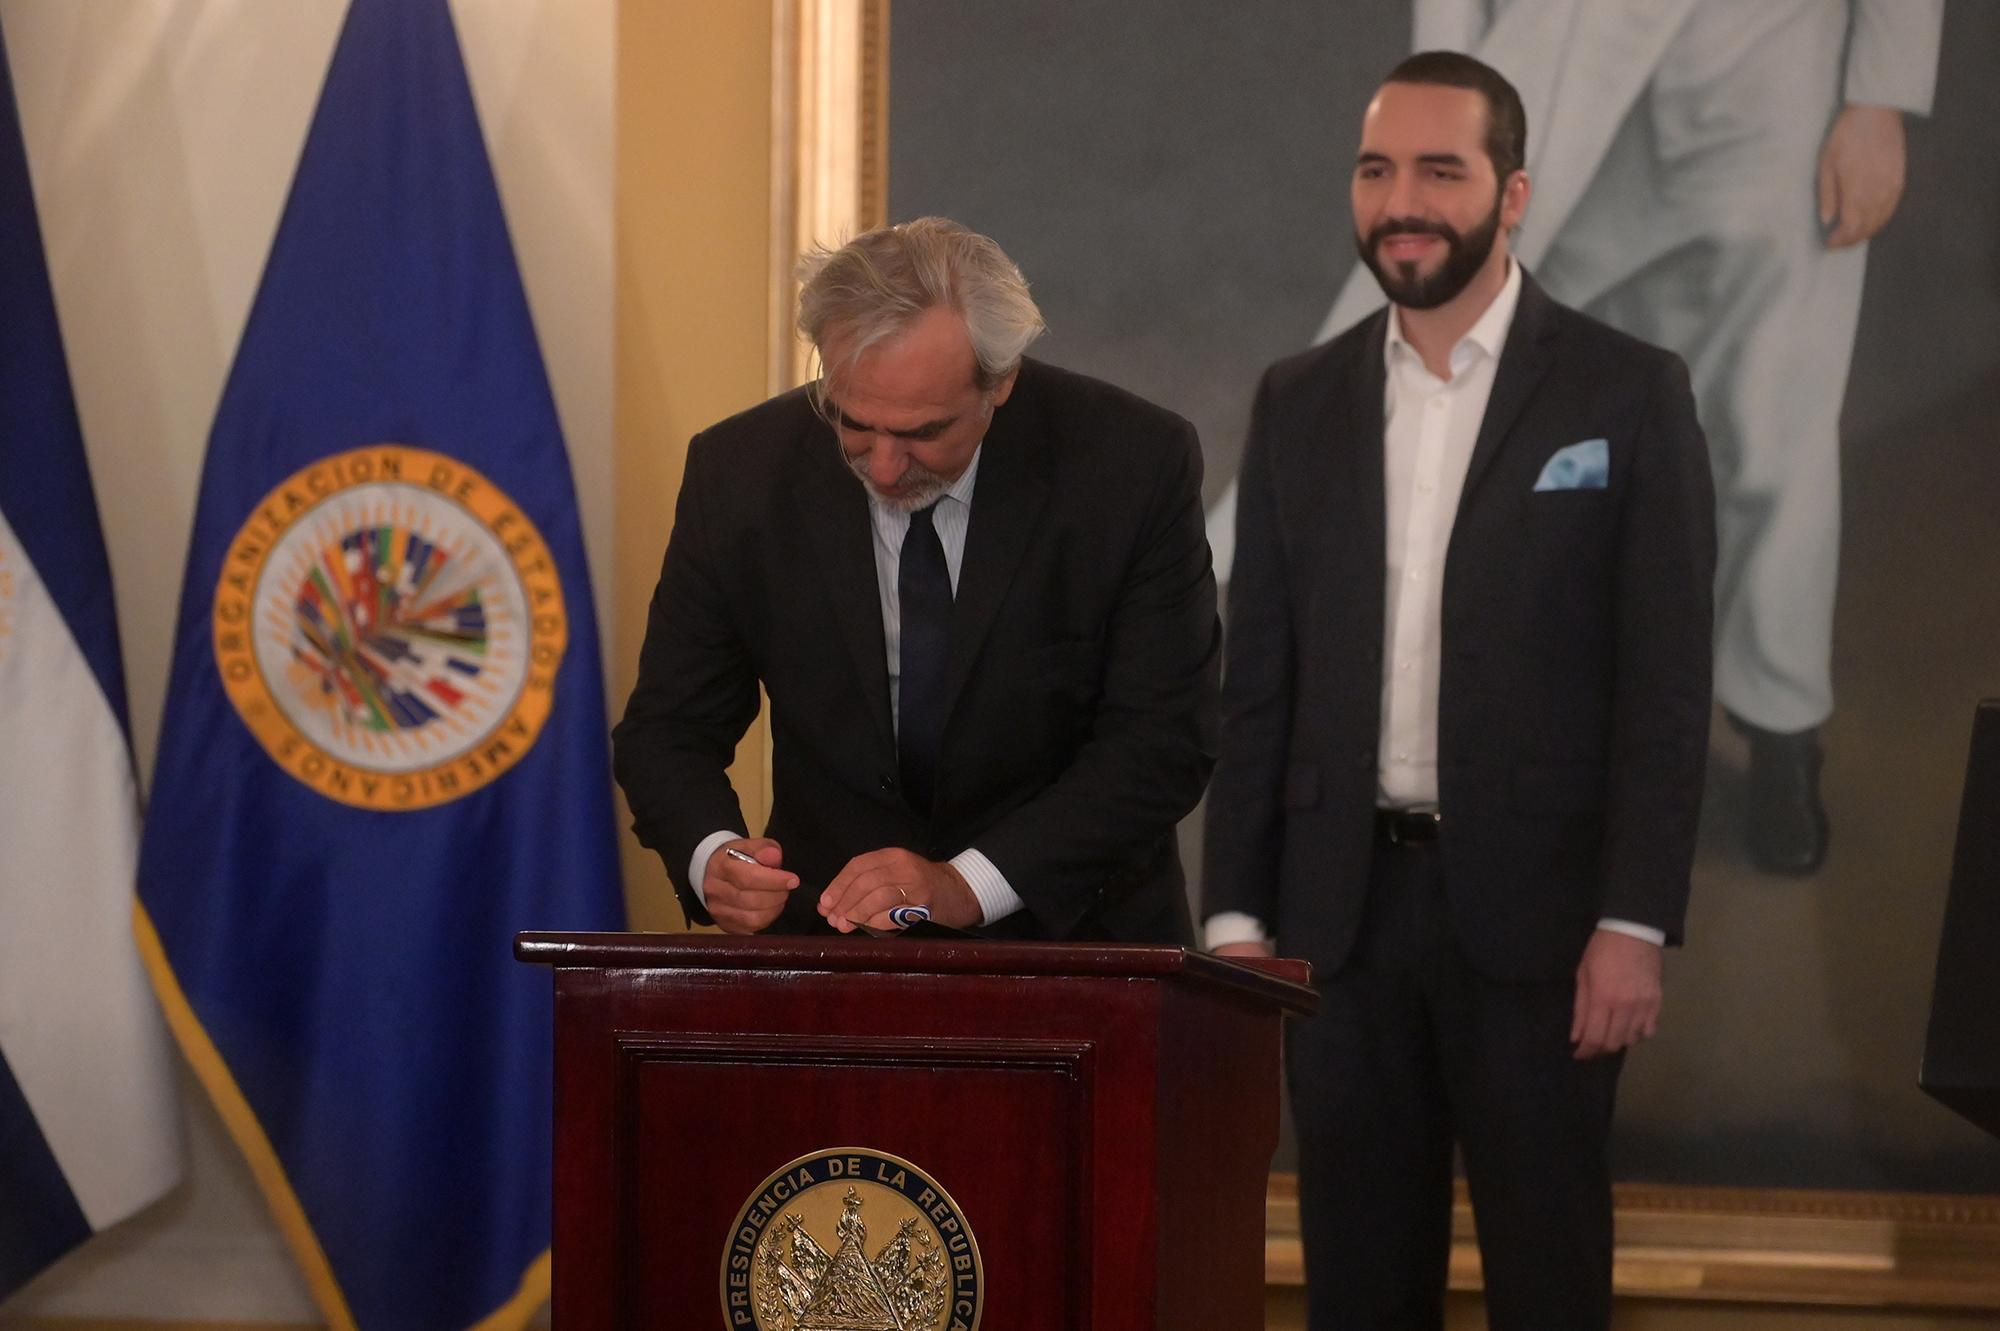 The special envoy of the Organization of American States, Uruguayan Luis Porto (L), signs the letter of understanding next to Salvadoran President Nayib Bukele during a press conference to announce the installation of the International Commission Against Impunity in El Salvador (CICIES) at the presidential palace, in San Salvador, on September 6, 2019. - The government of El Salvador together with the Organization of American States (OAS) announced on Friday the installation of an international commission against impunity that will be responsible for investigating acts of corruption and preventing impunity. (Photo by MARVIN RECINOS / AFP)